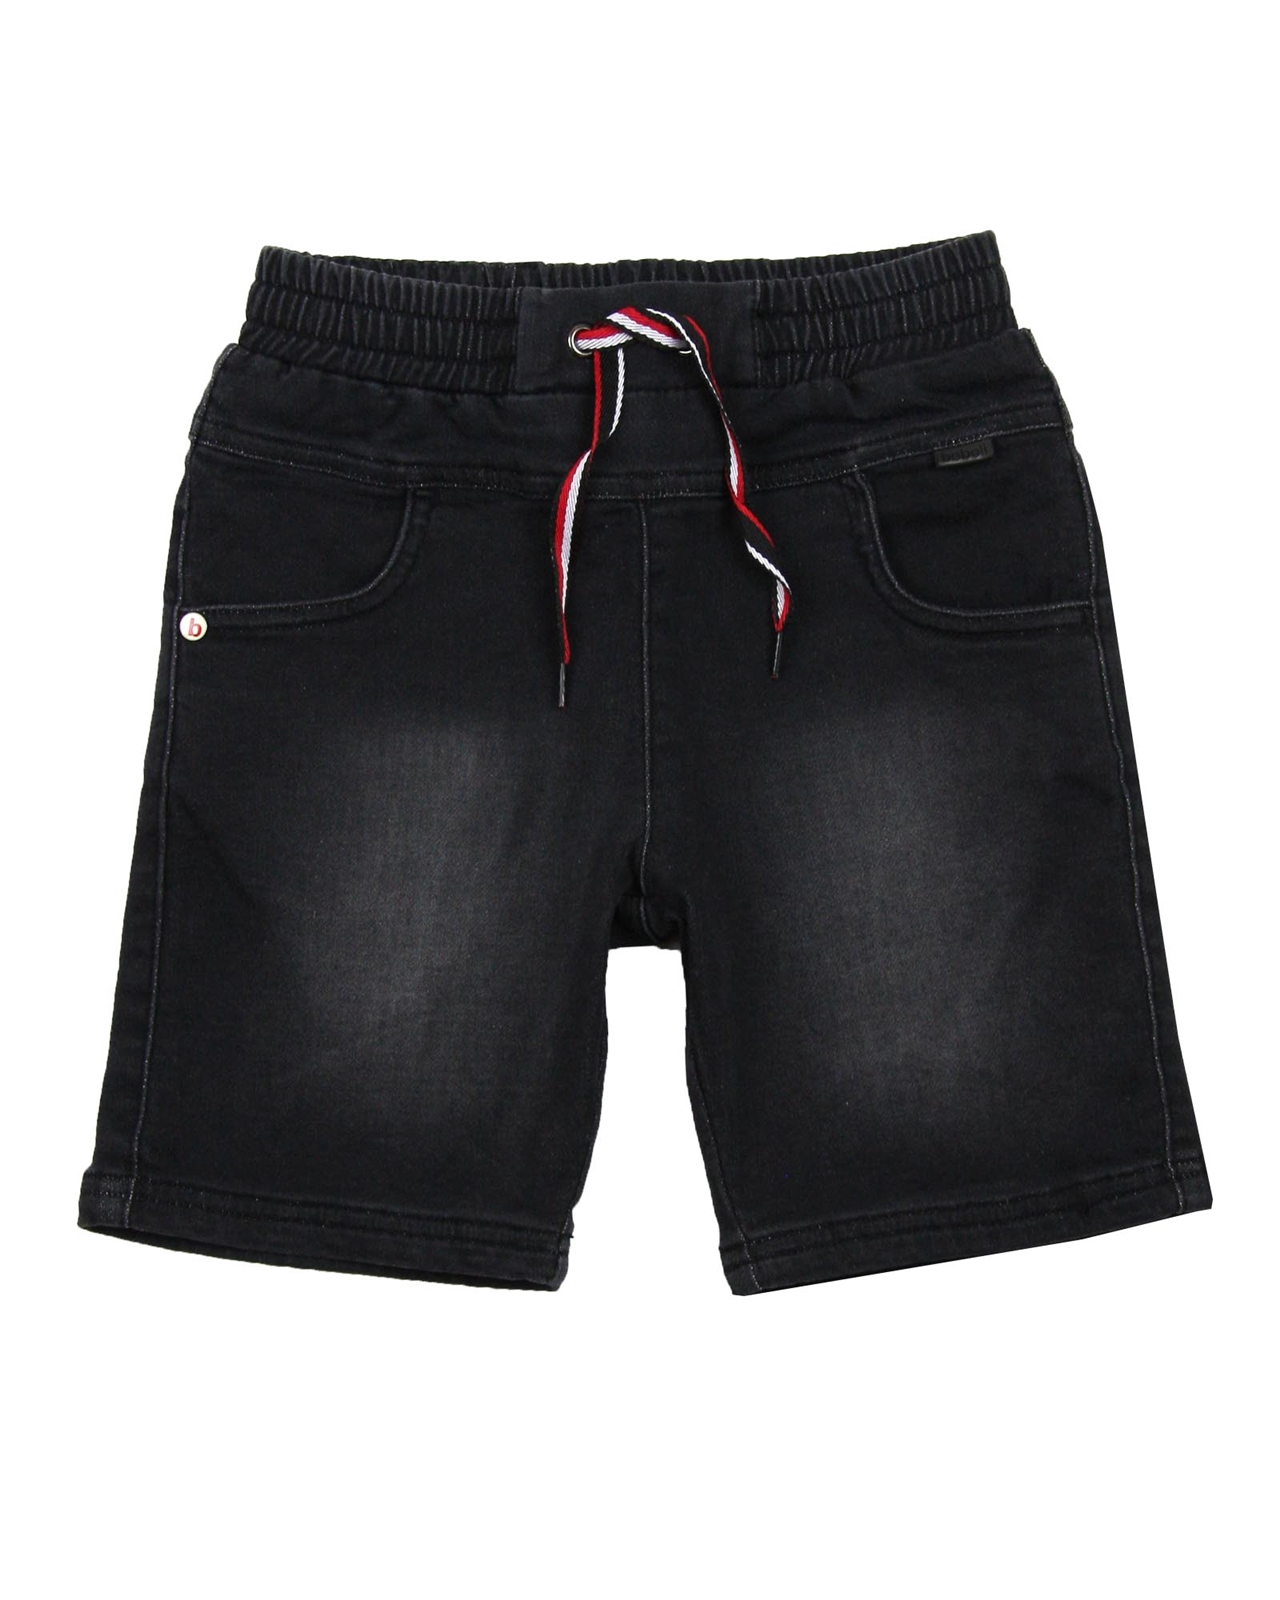 Sizes 4-16 Boboli Boys Denim Shorts with Elastic Waistband